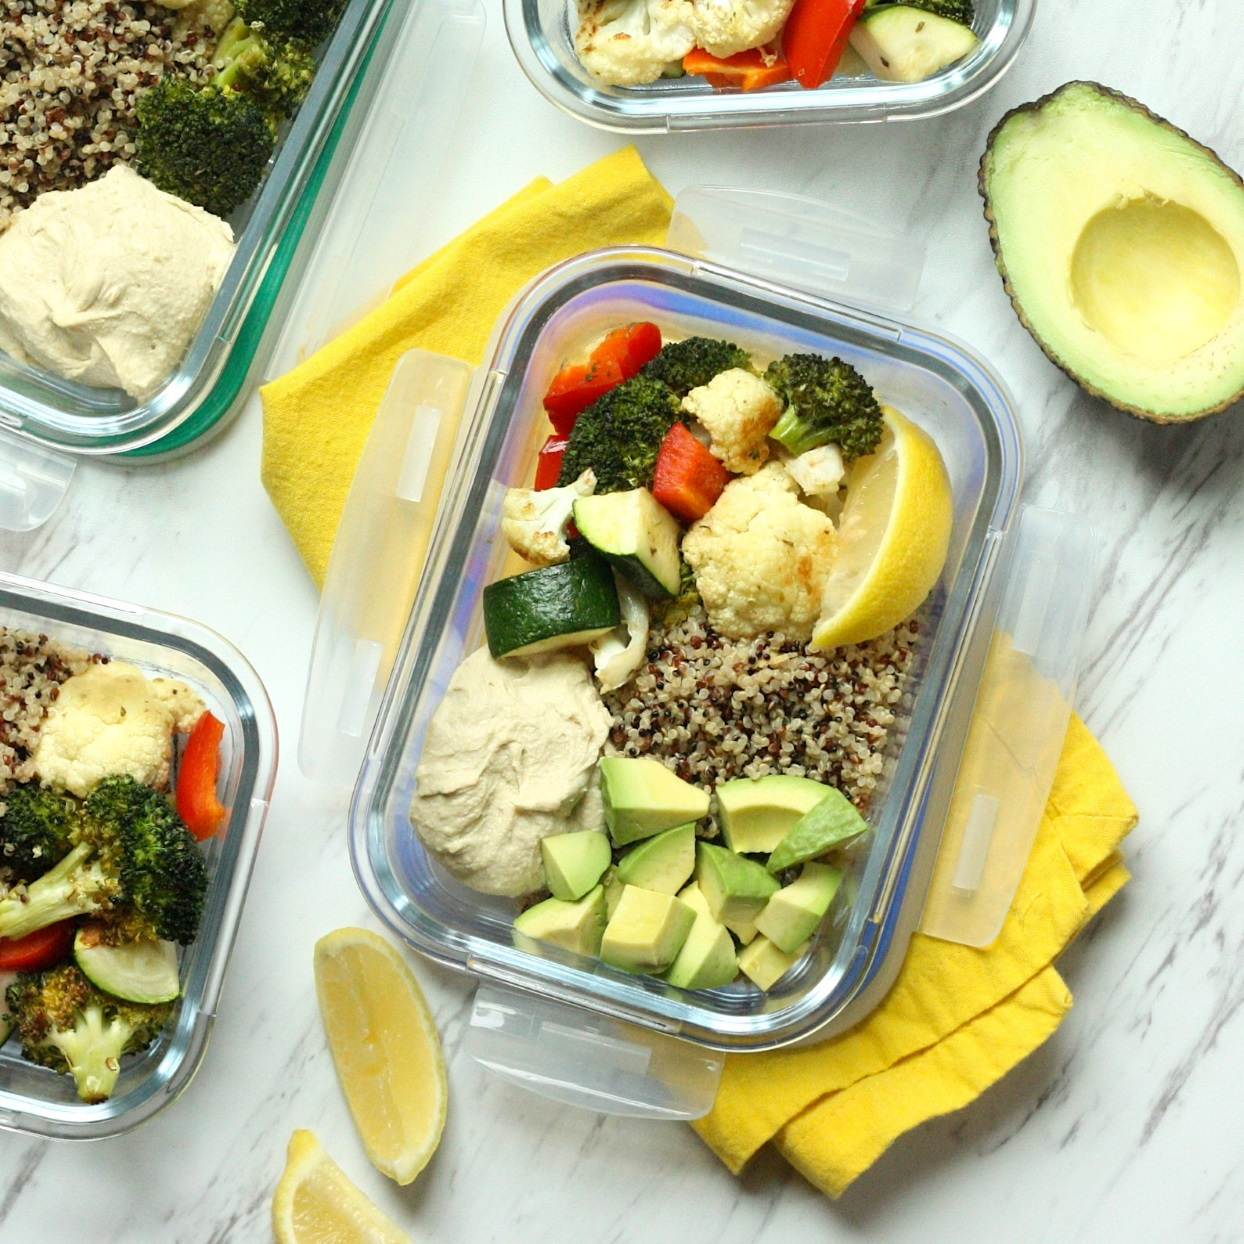 Brimming with colorful roasted vegetables, these plant-based meal-prep lunch bowls are high in fiber to keep you full through the afternoon. The easy roasted veggies are based on a popular recipe from our sister magazine. Feel free to use your favorite store-bought hummus to cut down on prep time, or make a batch of your own. You can also sub in an 8-ounce microwaveable quinoa pouch to minimize cooking.